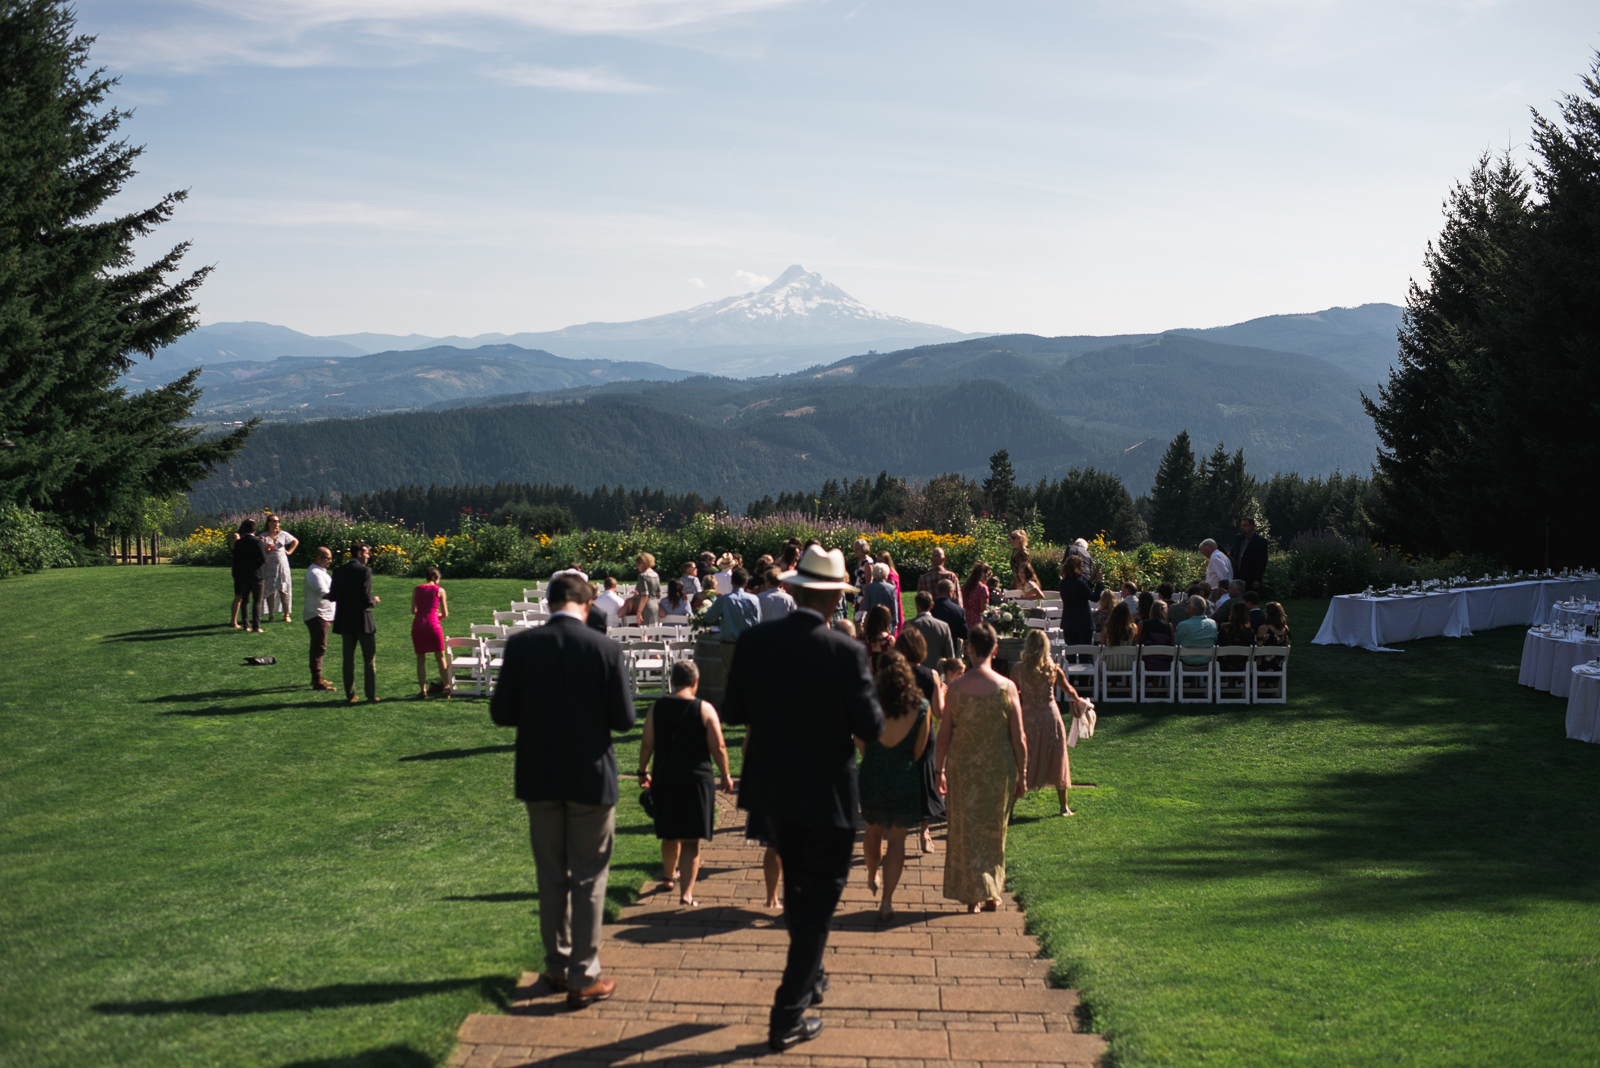 041 gorge crest vineyard wedding